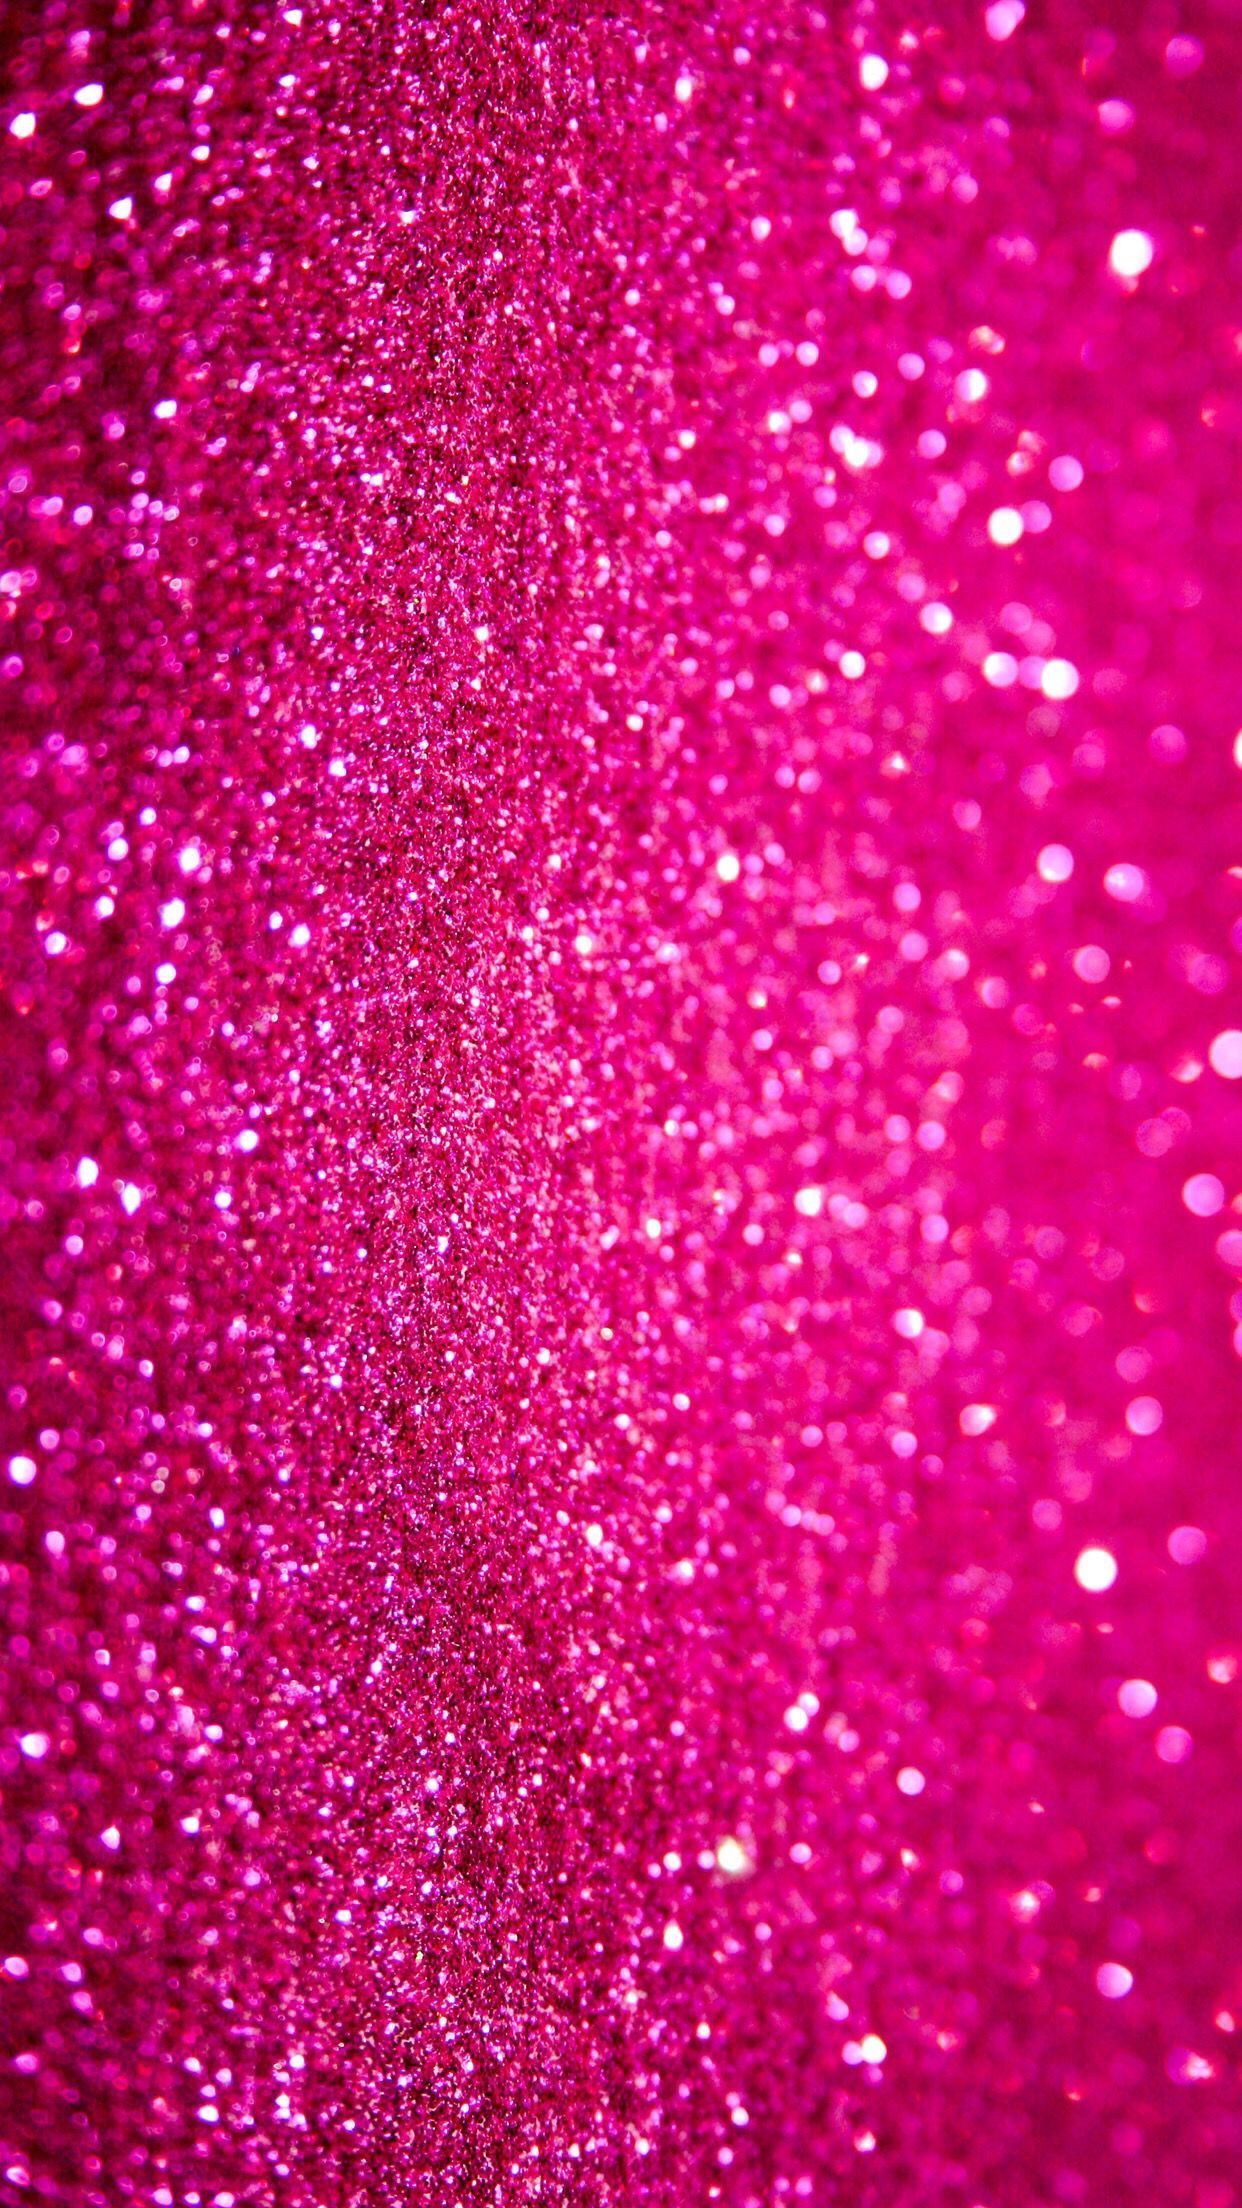 Intro Background With Pictures Pink Glitter Wallpaper Pink Wallpaper Iphone Pink Wallpaper